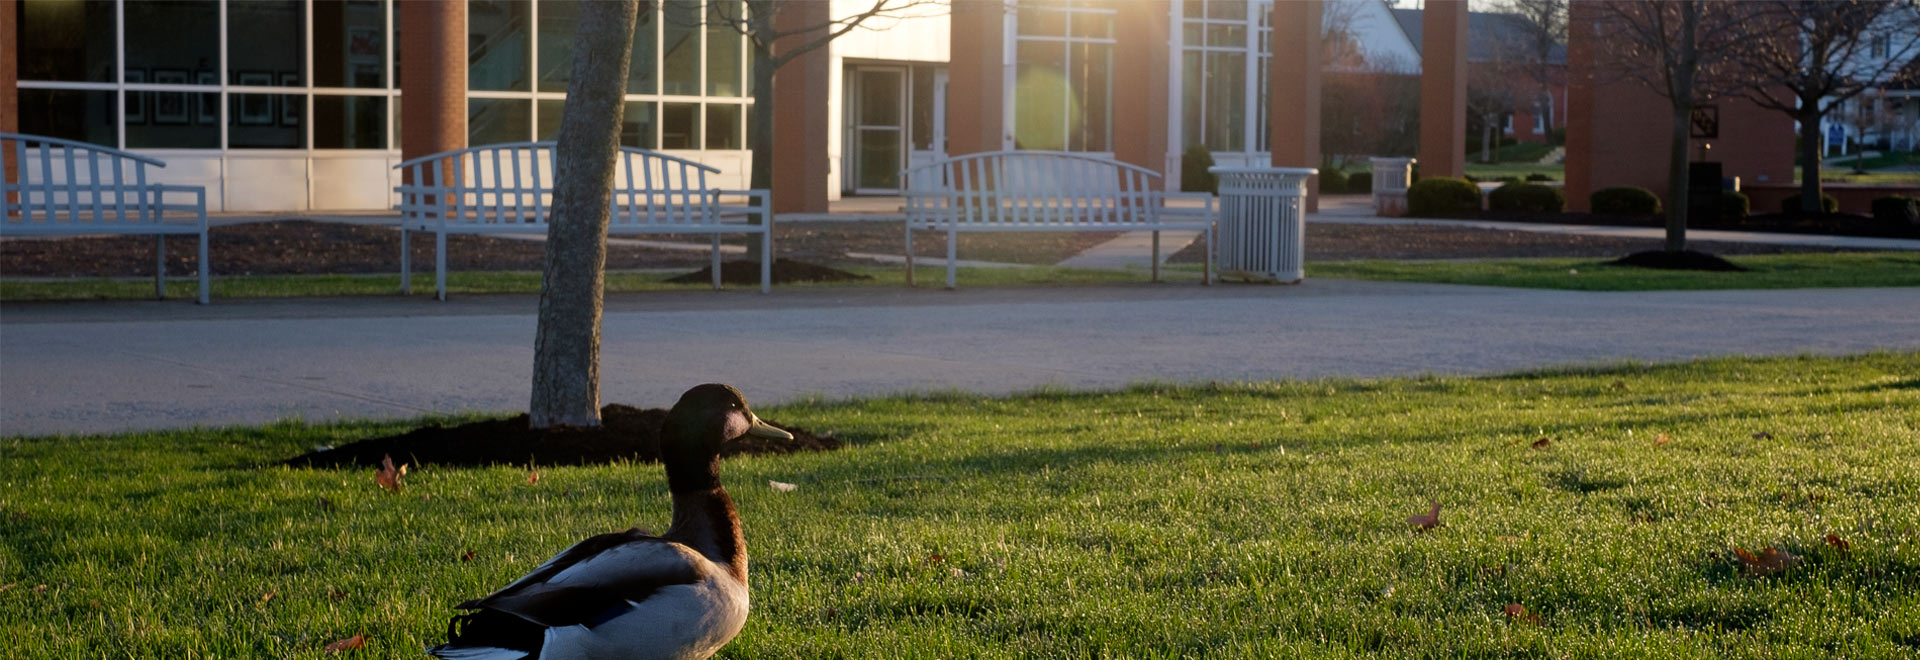 Duck sits outside the Dicke college of business